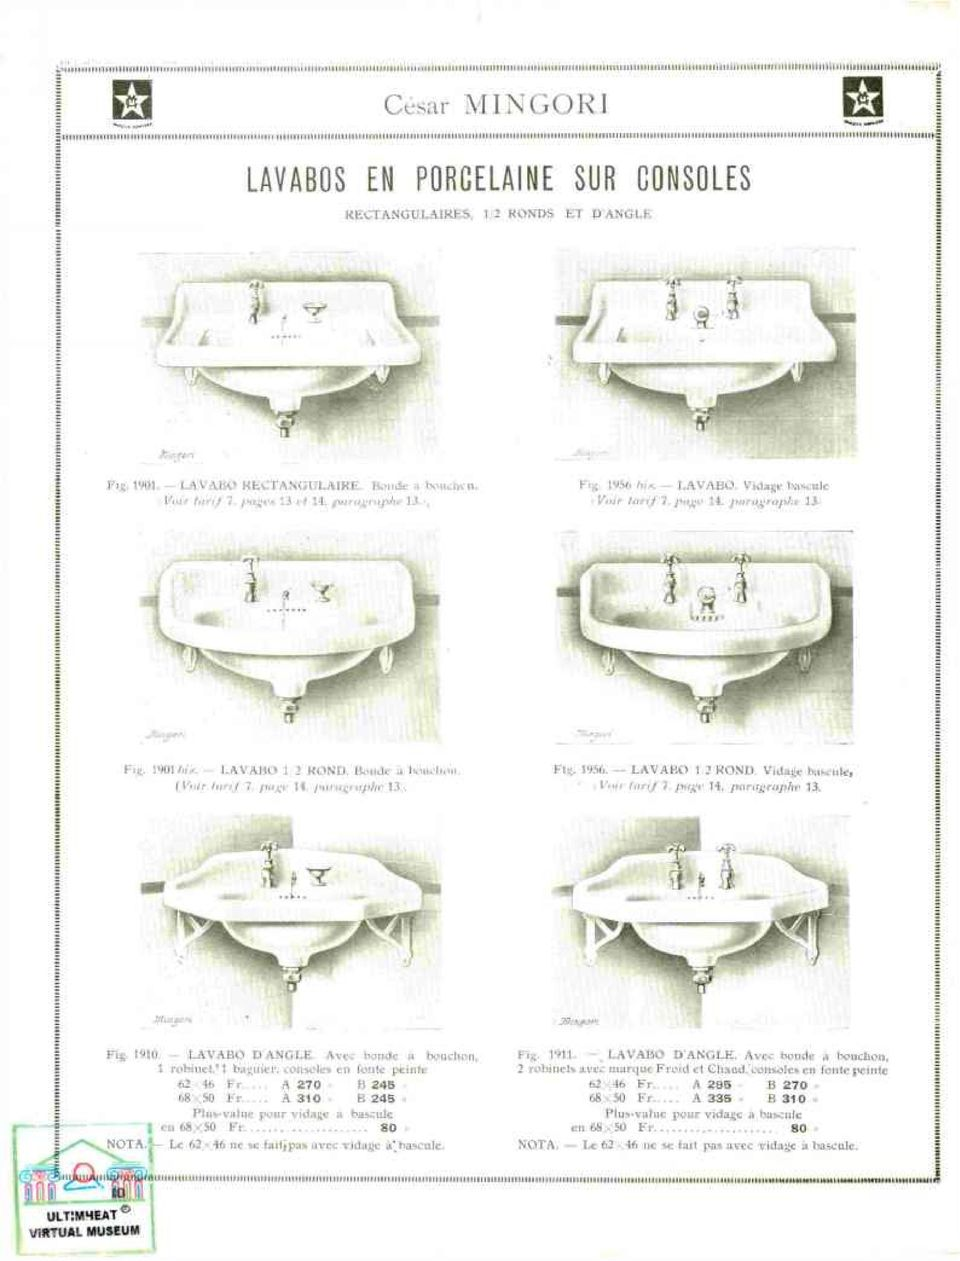 1.2 RONDS ET DANGLE Jlùr-fùri Fig. 1901. - LAVABO RECTANGULAIRE. Boude a bouchcn. Voir tarif 7. pages 13 et 14. paragraphe 13. i, Fig. 1956 his. LAVABO. Vidage bascule i Voir tarif 7. page 14.